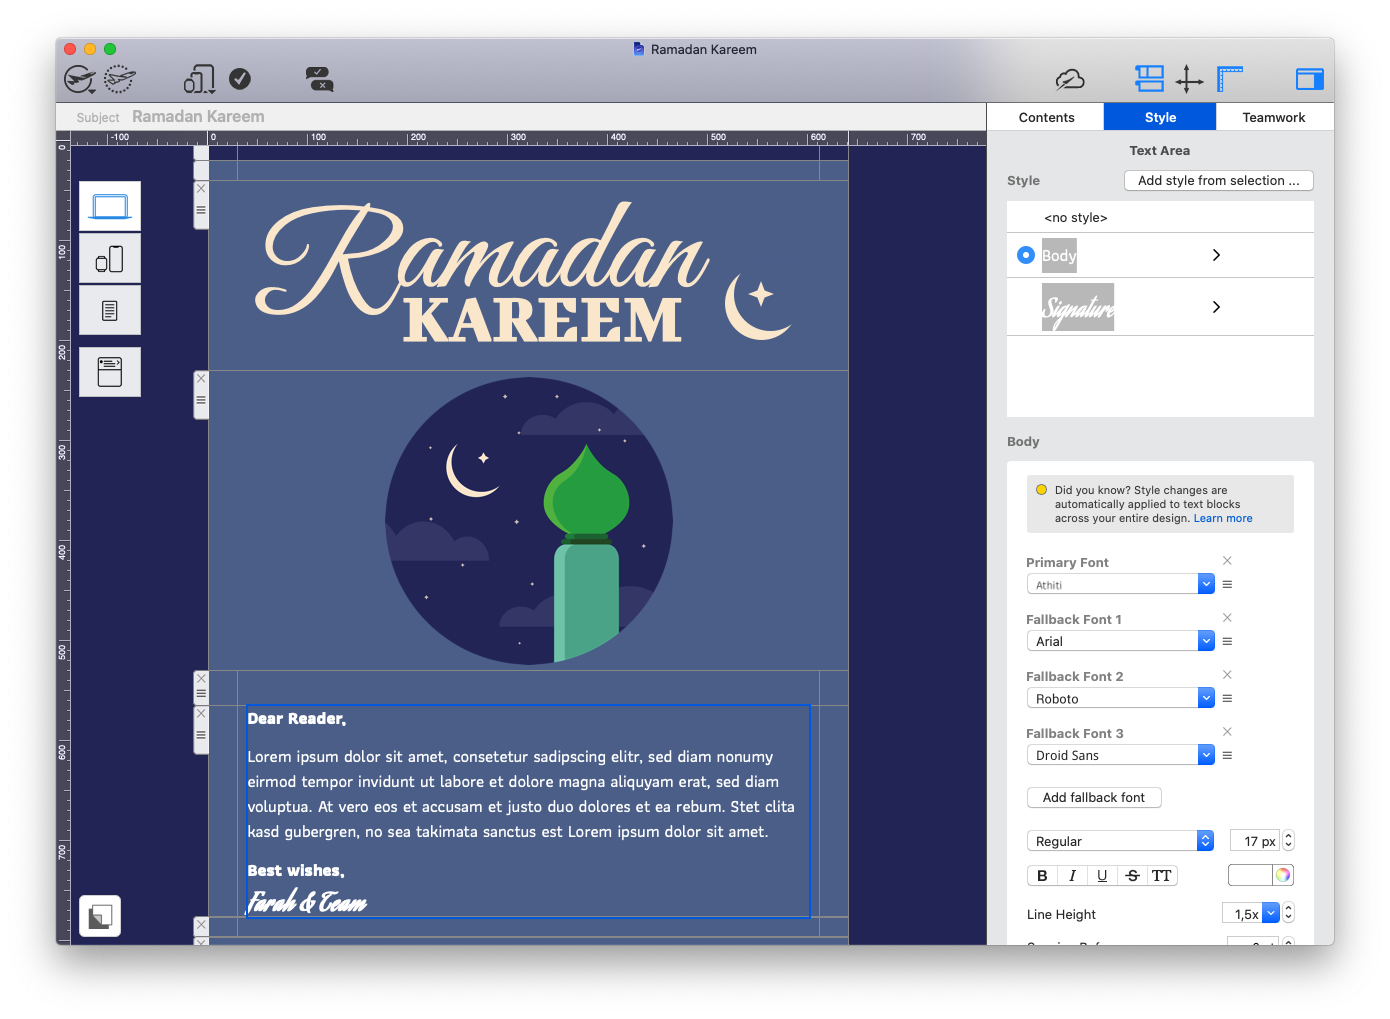 Ramadan email greeting created in Mail Designer 365.